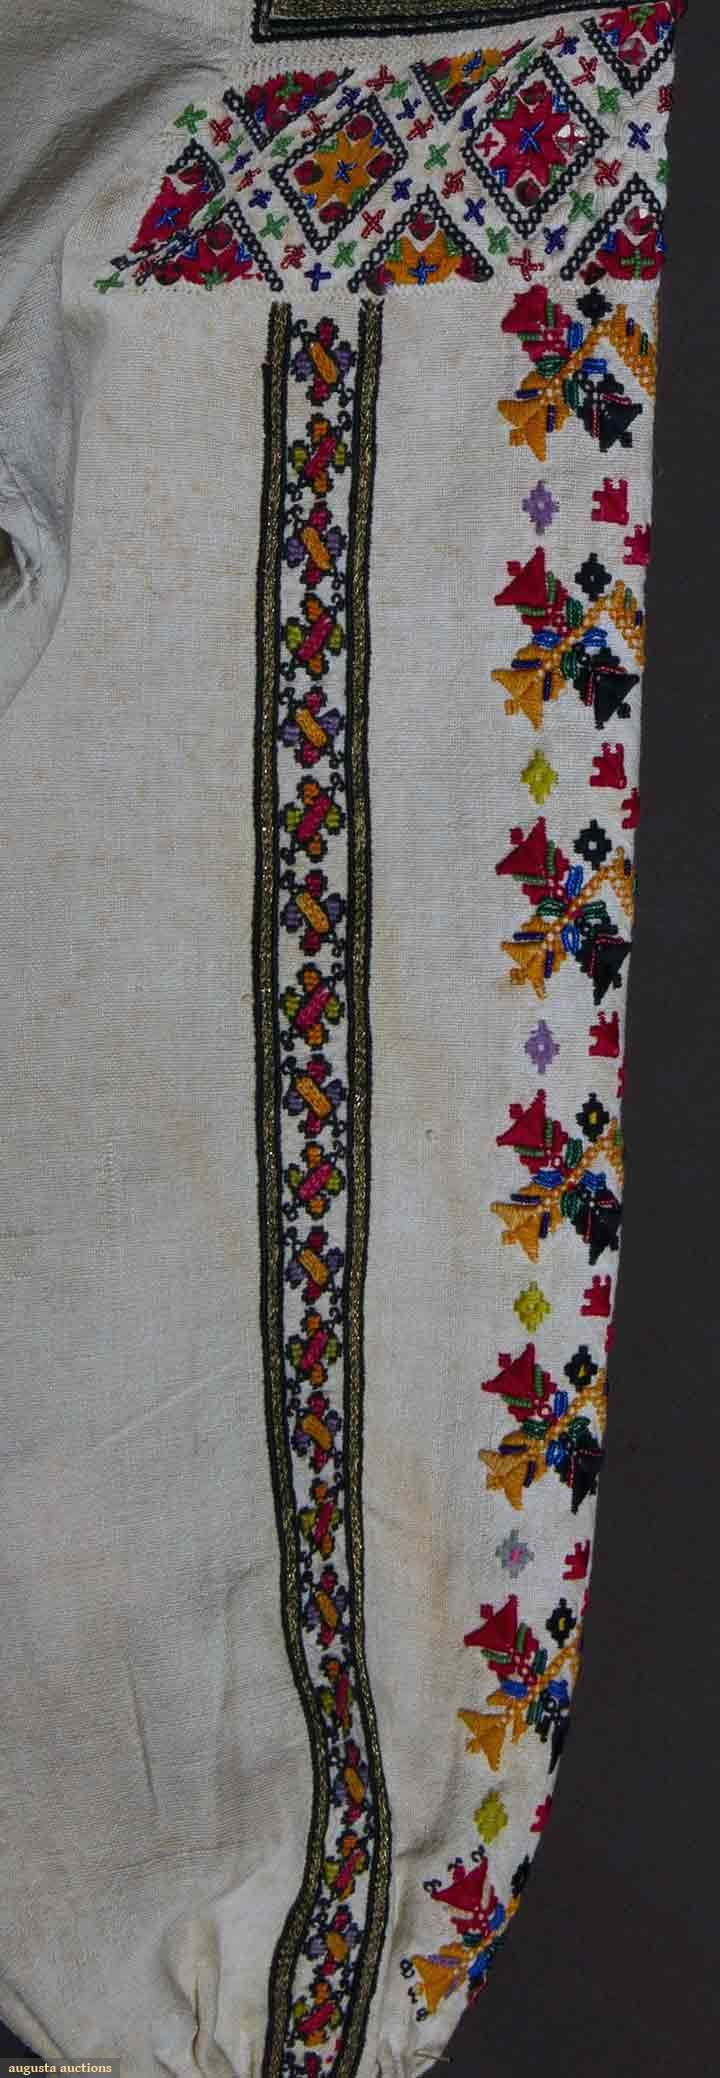 Romanian blouse detail 19th C (Bucovina)